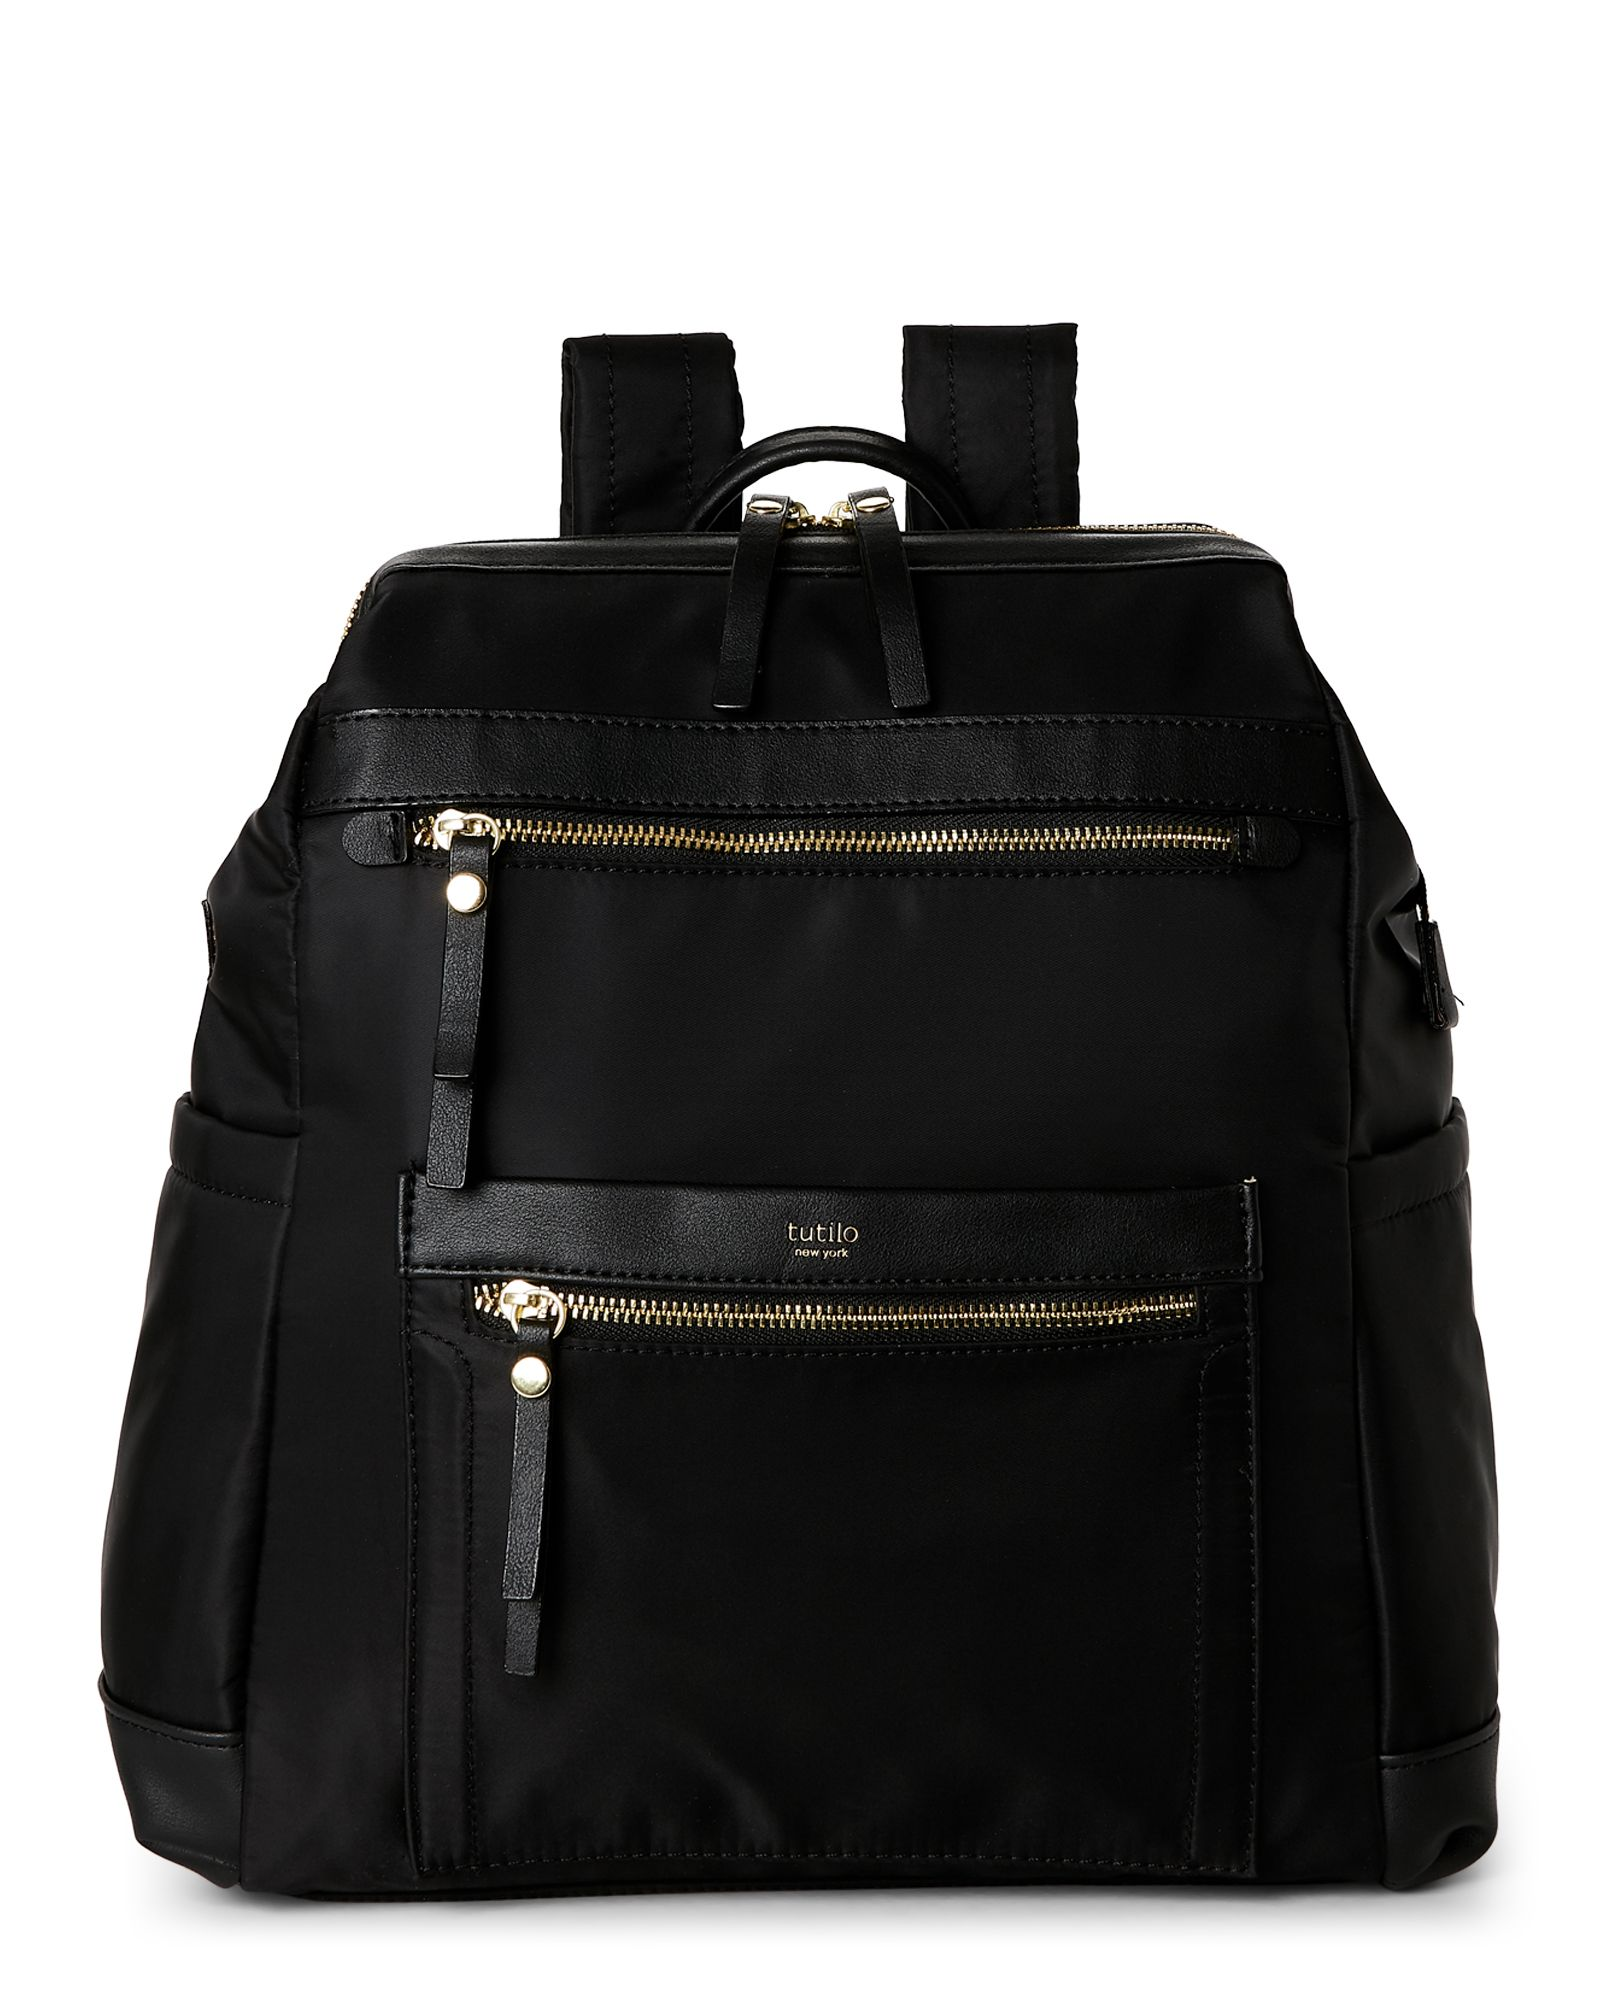 a0c132638a Tutilo Black Captive Nylon Backpack. Tutilo Black Captive Nylon Backpack  Cool Items